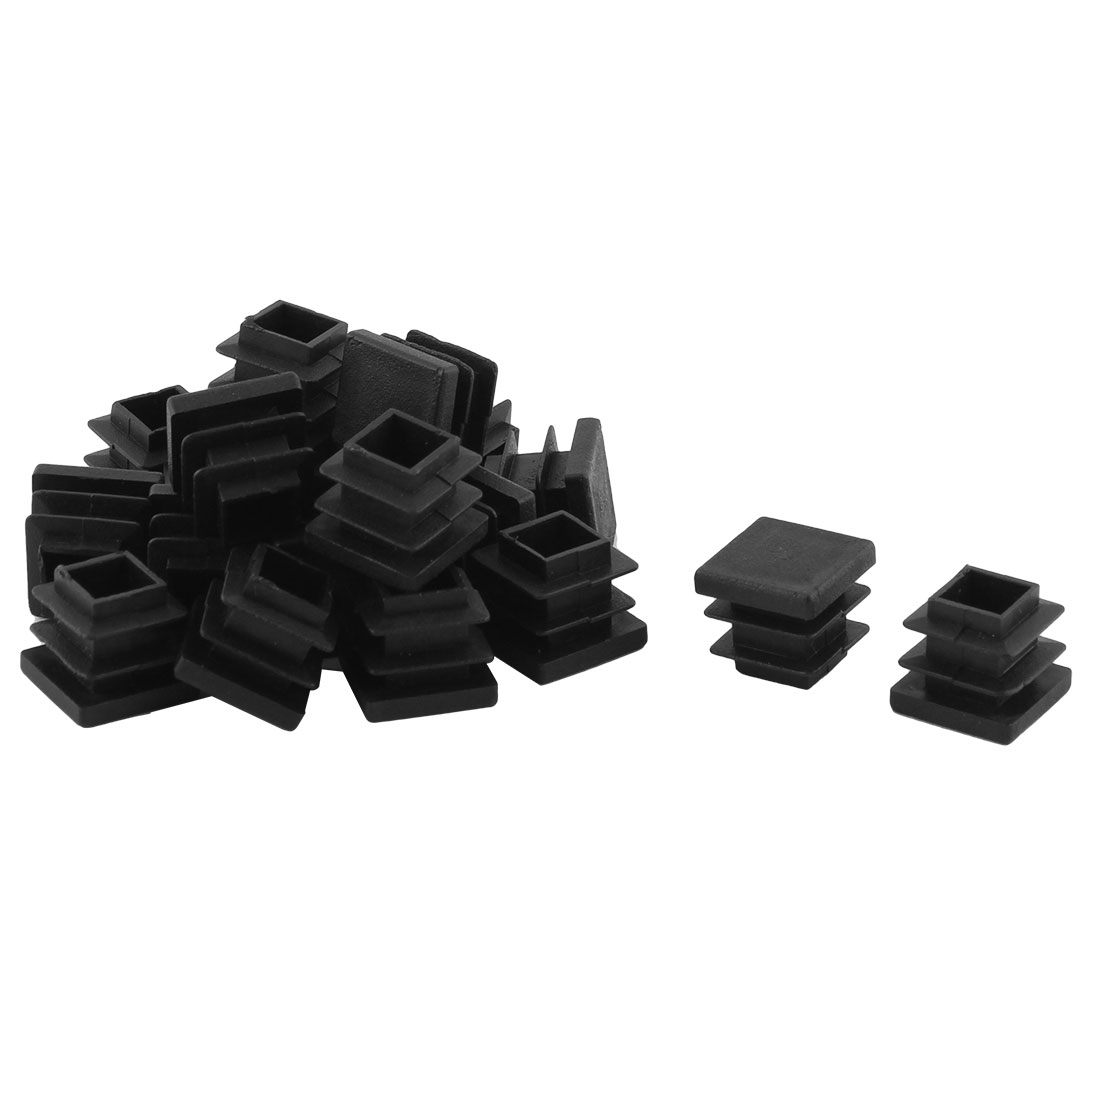 Home Office Plastic Square Table Chair Leg Tube Insert Black 16 x 16mm 20pcs